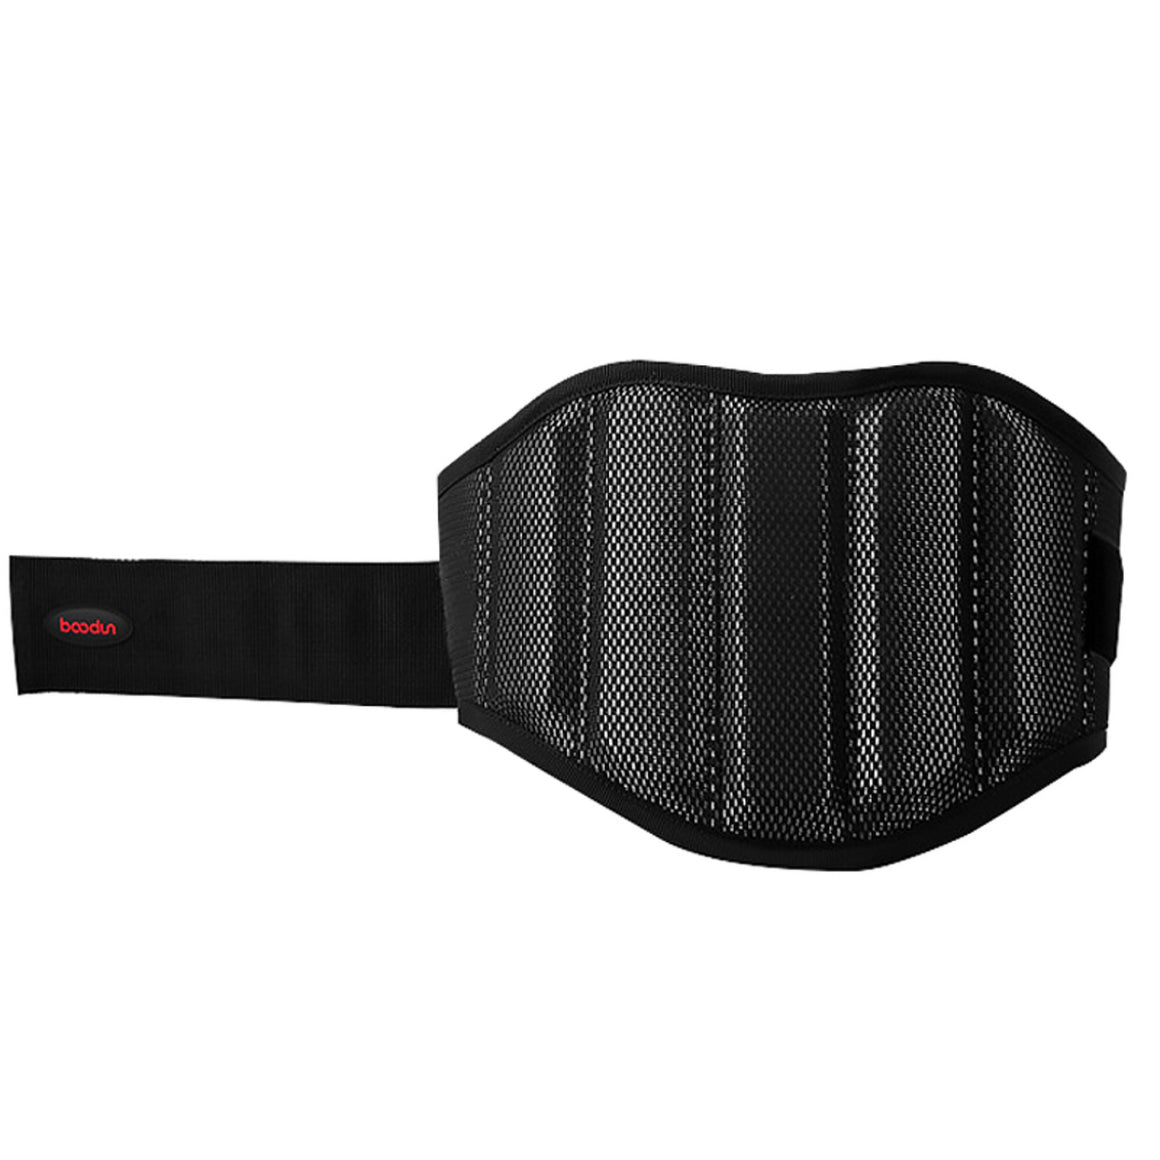 Fitness Nylon Gym Belt Weight Lifting Squat Belt Weightlifting Bodybuilding Waist Protection Power Training Belt Ultra Wide